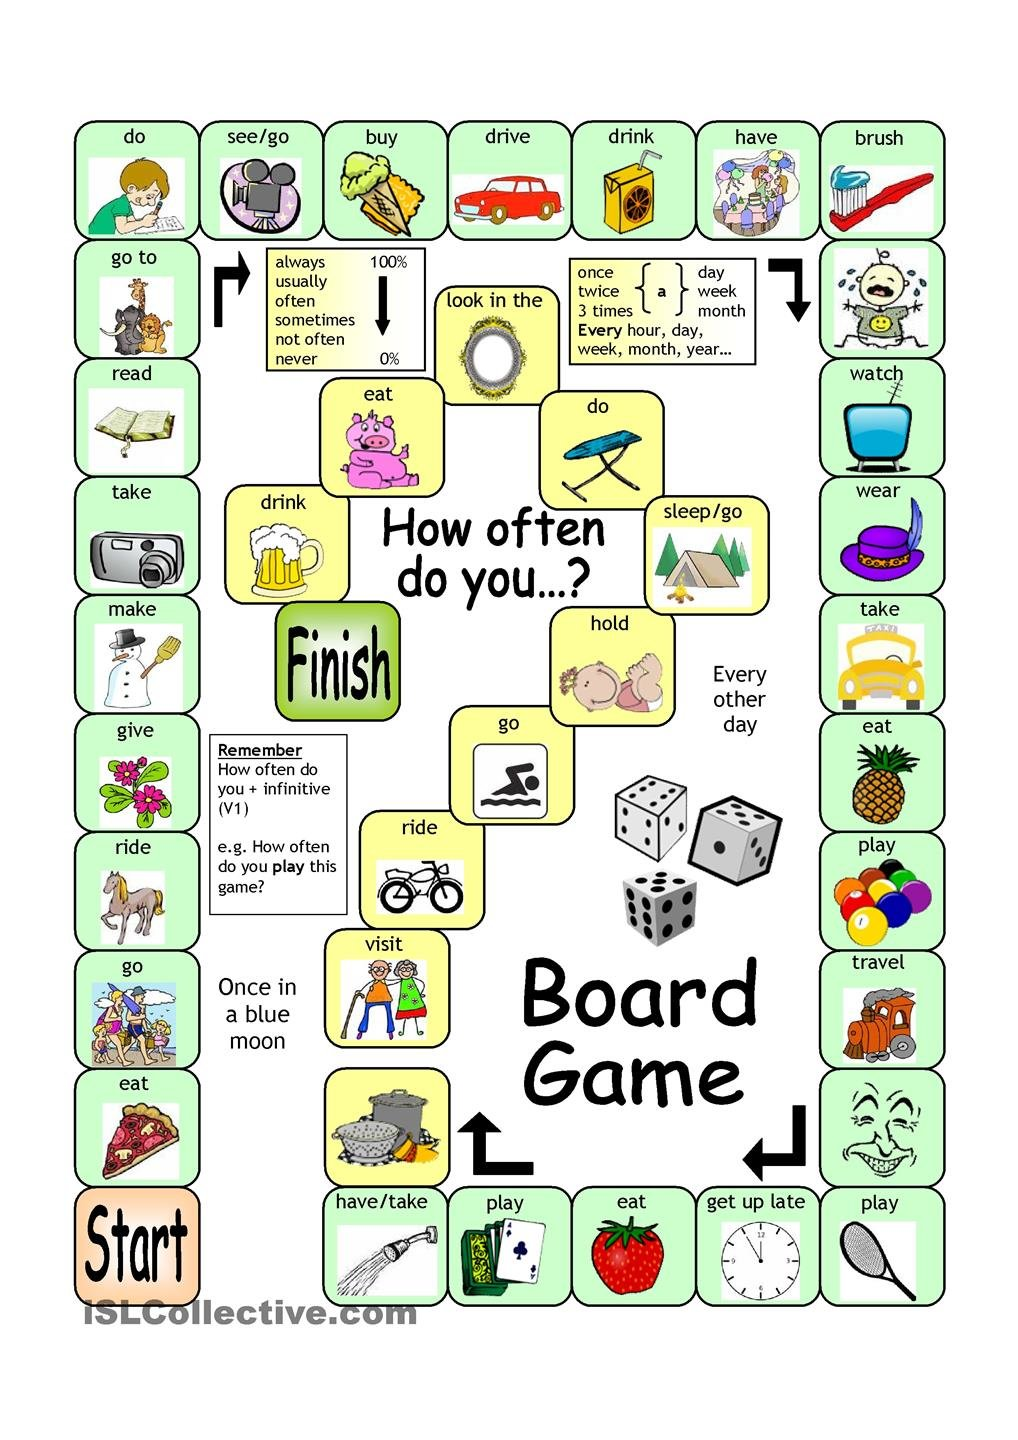 Printable board game templates for teachers galleryhipc card printable board game templates for teachers galleryhipc maxwellsz